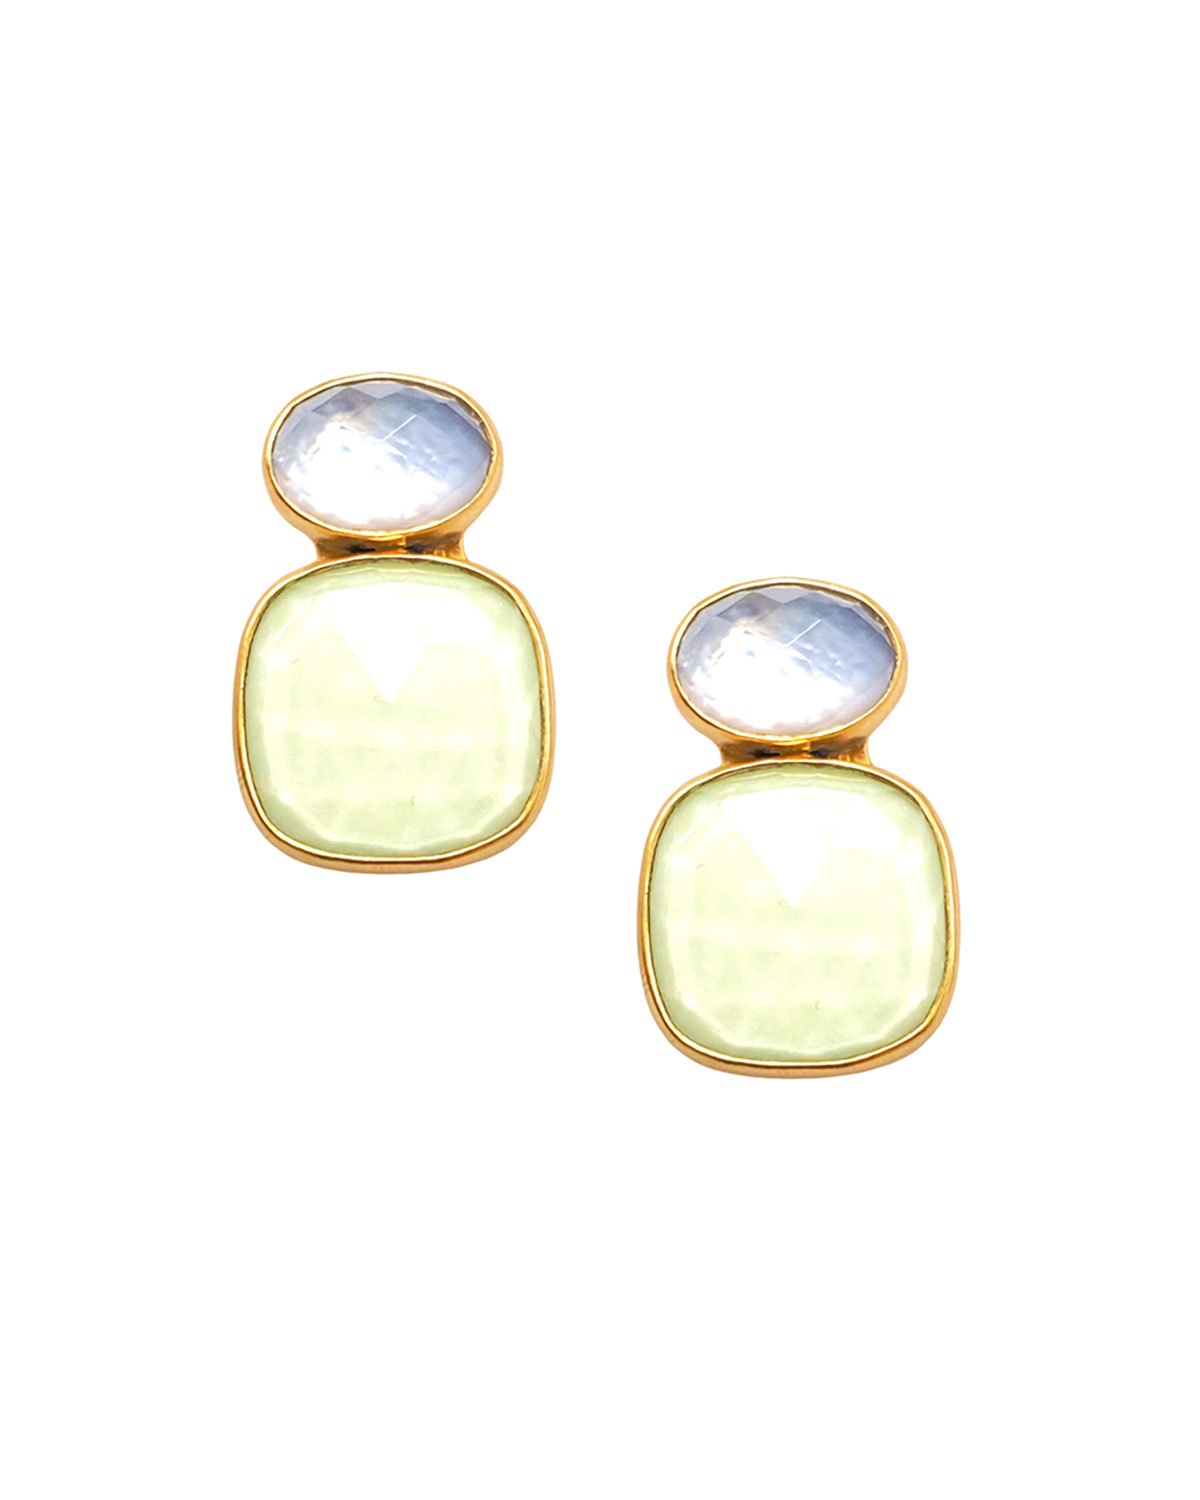 Chrysoprase and Mother-of-Pearl Doublet Earrings